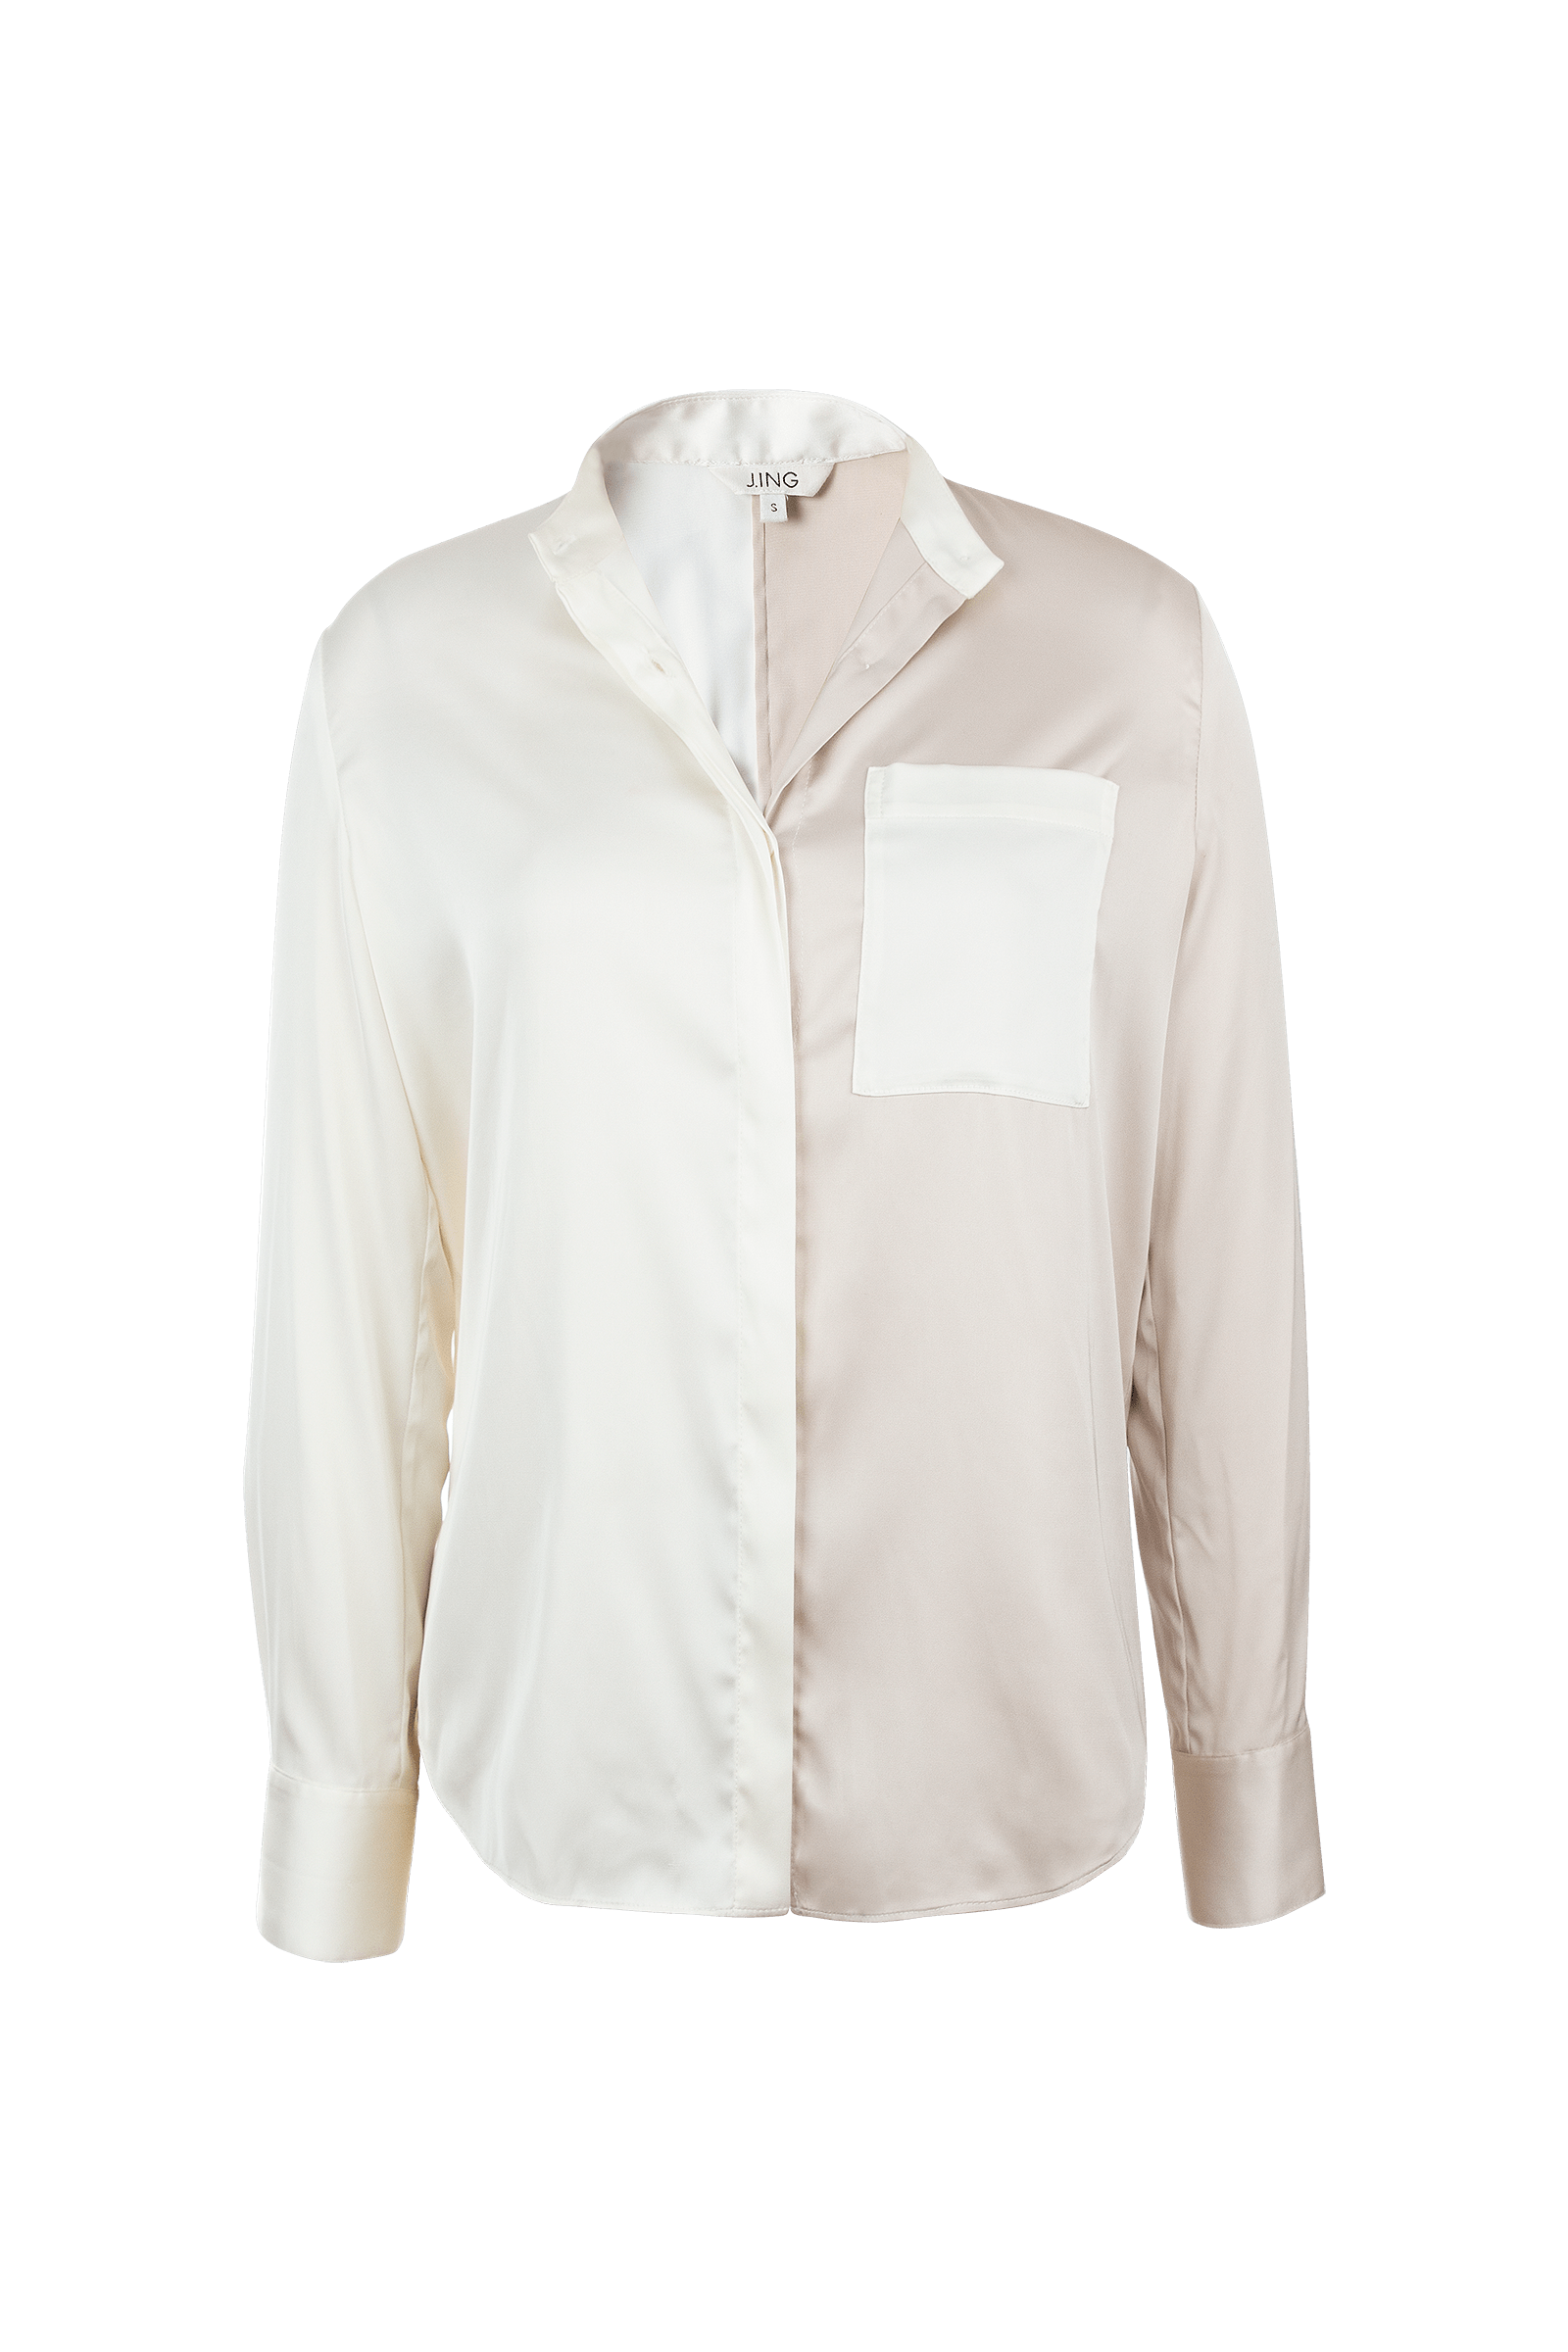 Cleo Champagne SIlky Blouse